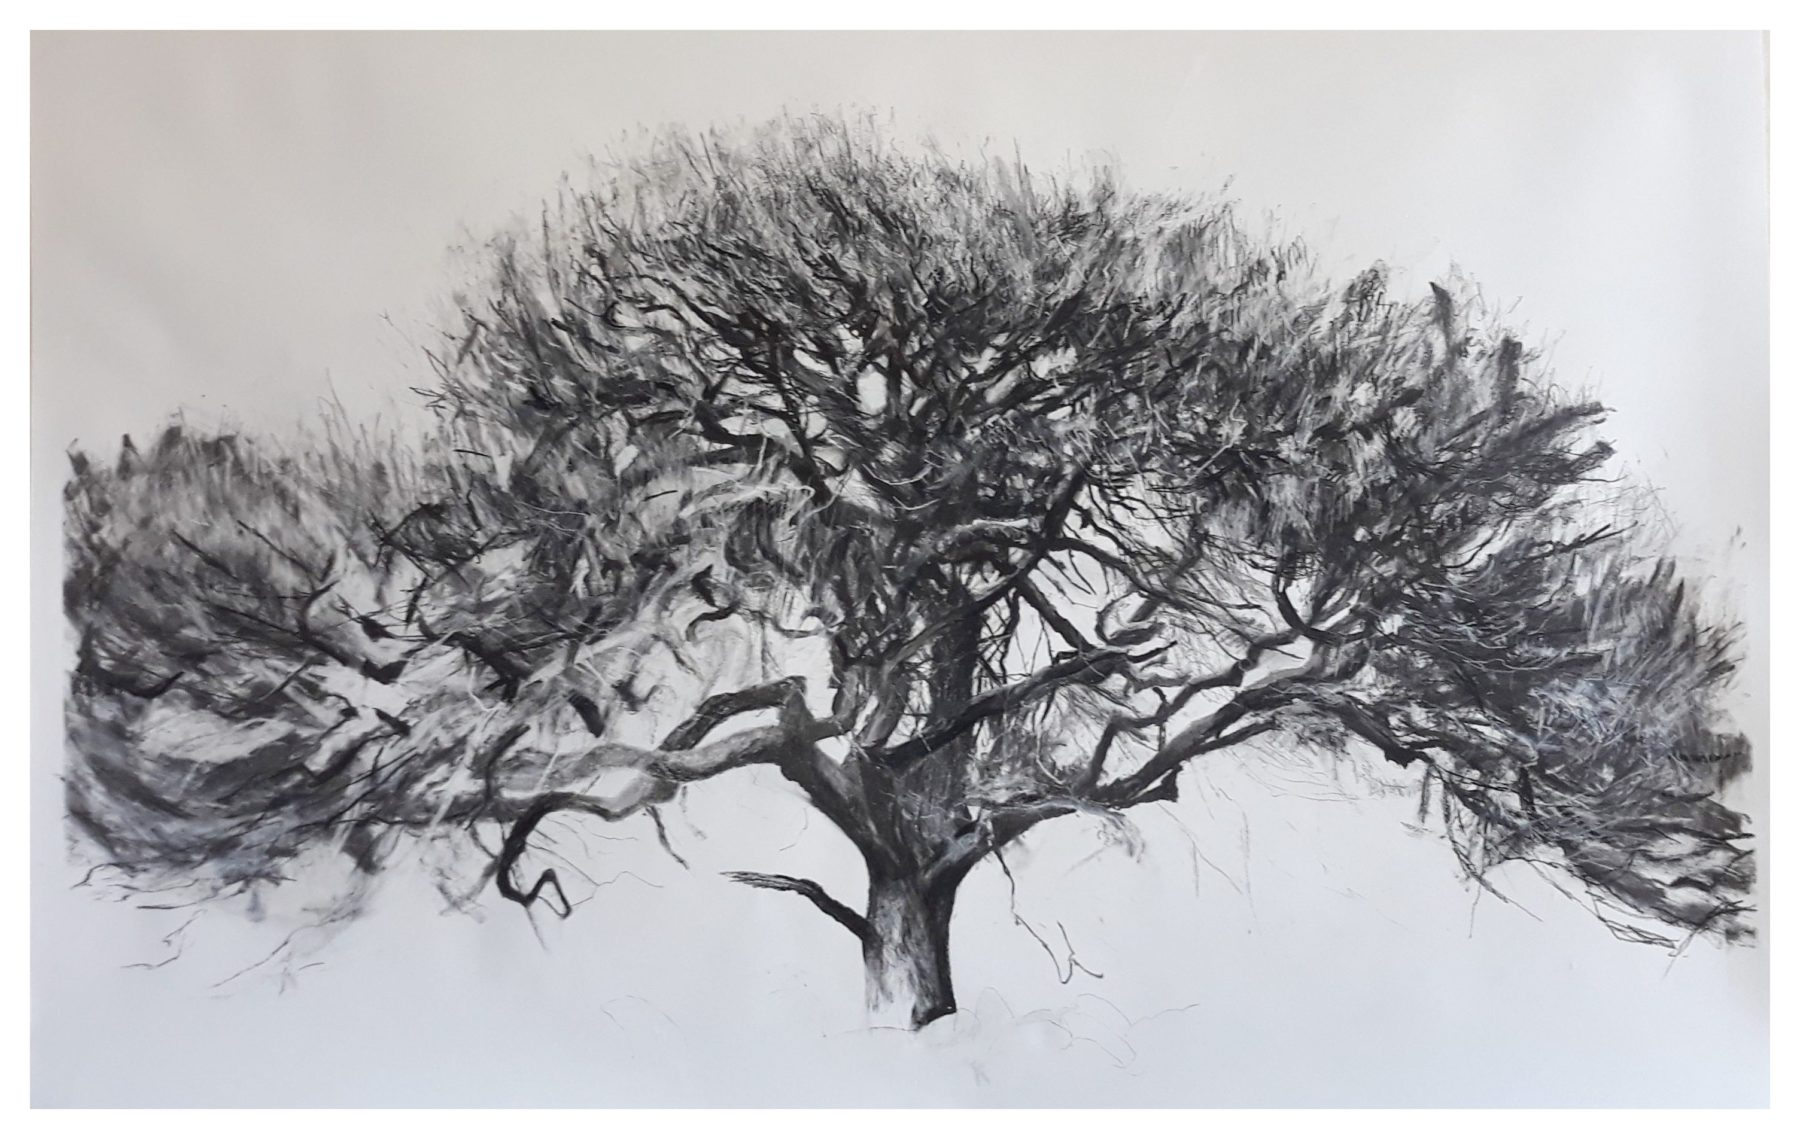 Highly detailed portrait drawing of a single tree rendered in black against a white background